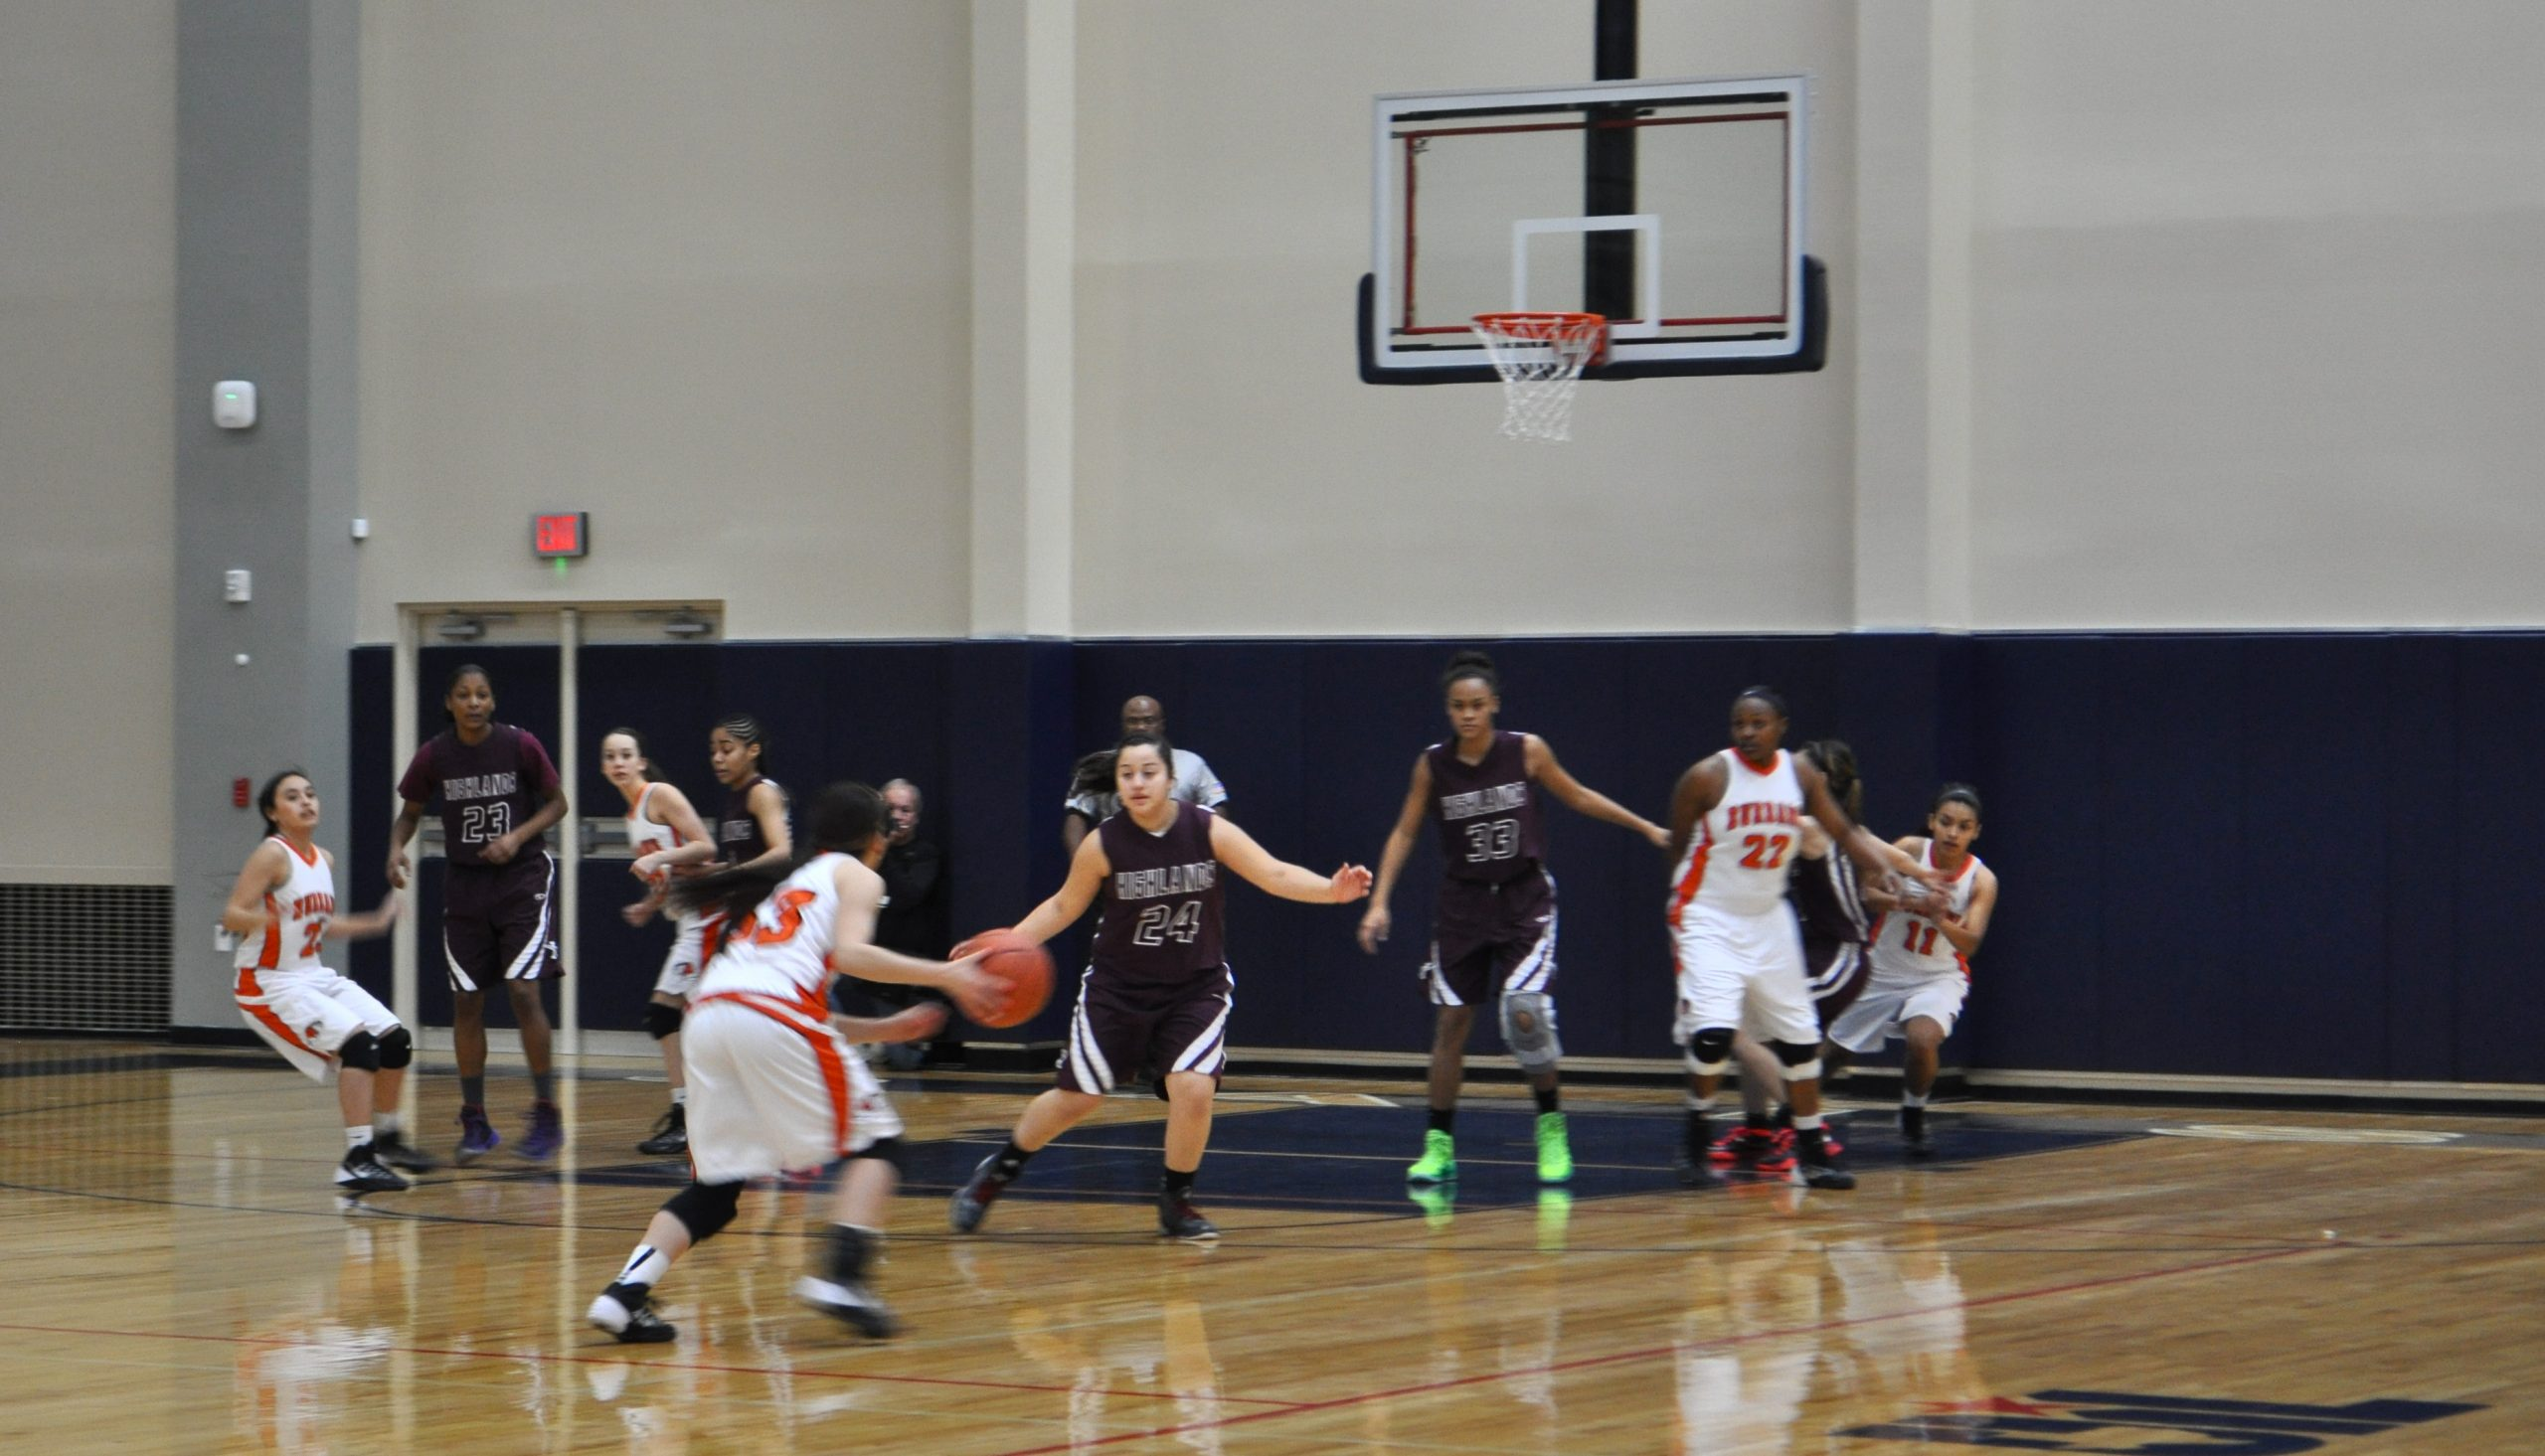 The first game held in the newly-renovated Alamo Convocation Center, Highlands vs Burbank girls Varsity basketball. Photo by Iris Dimmick.